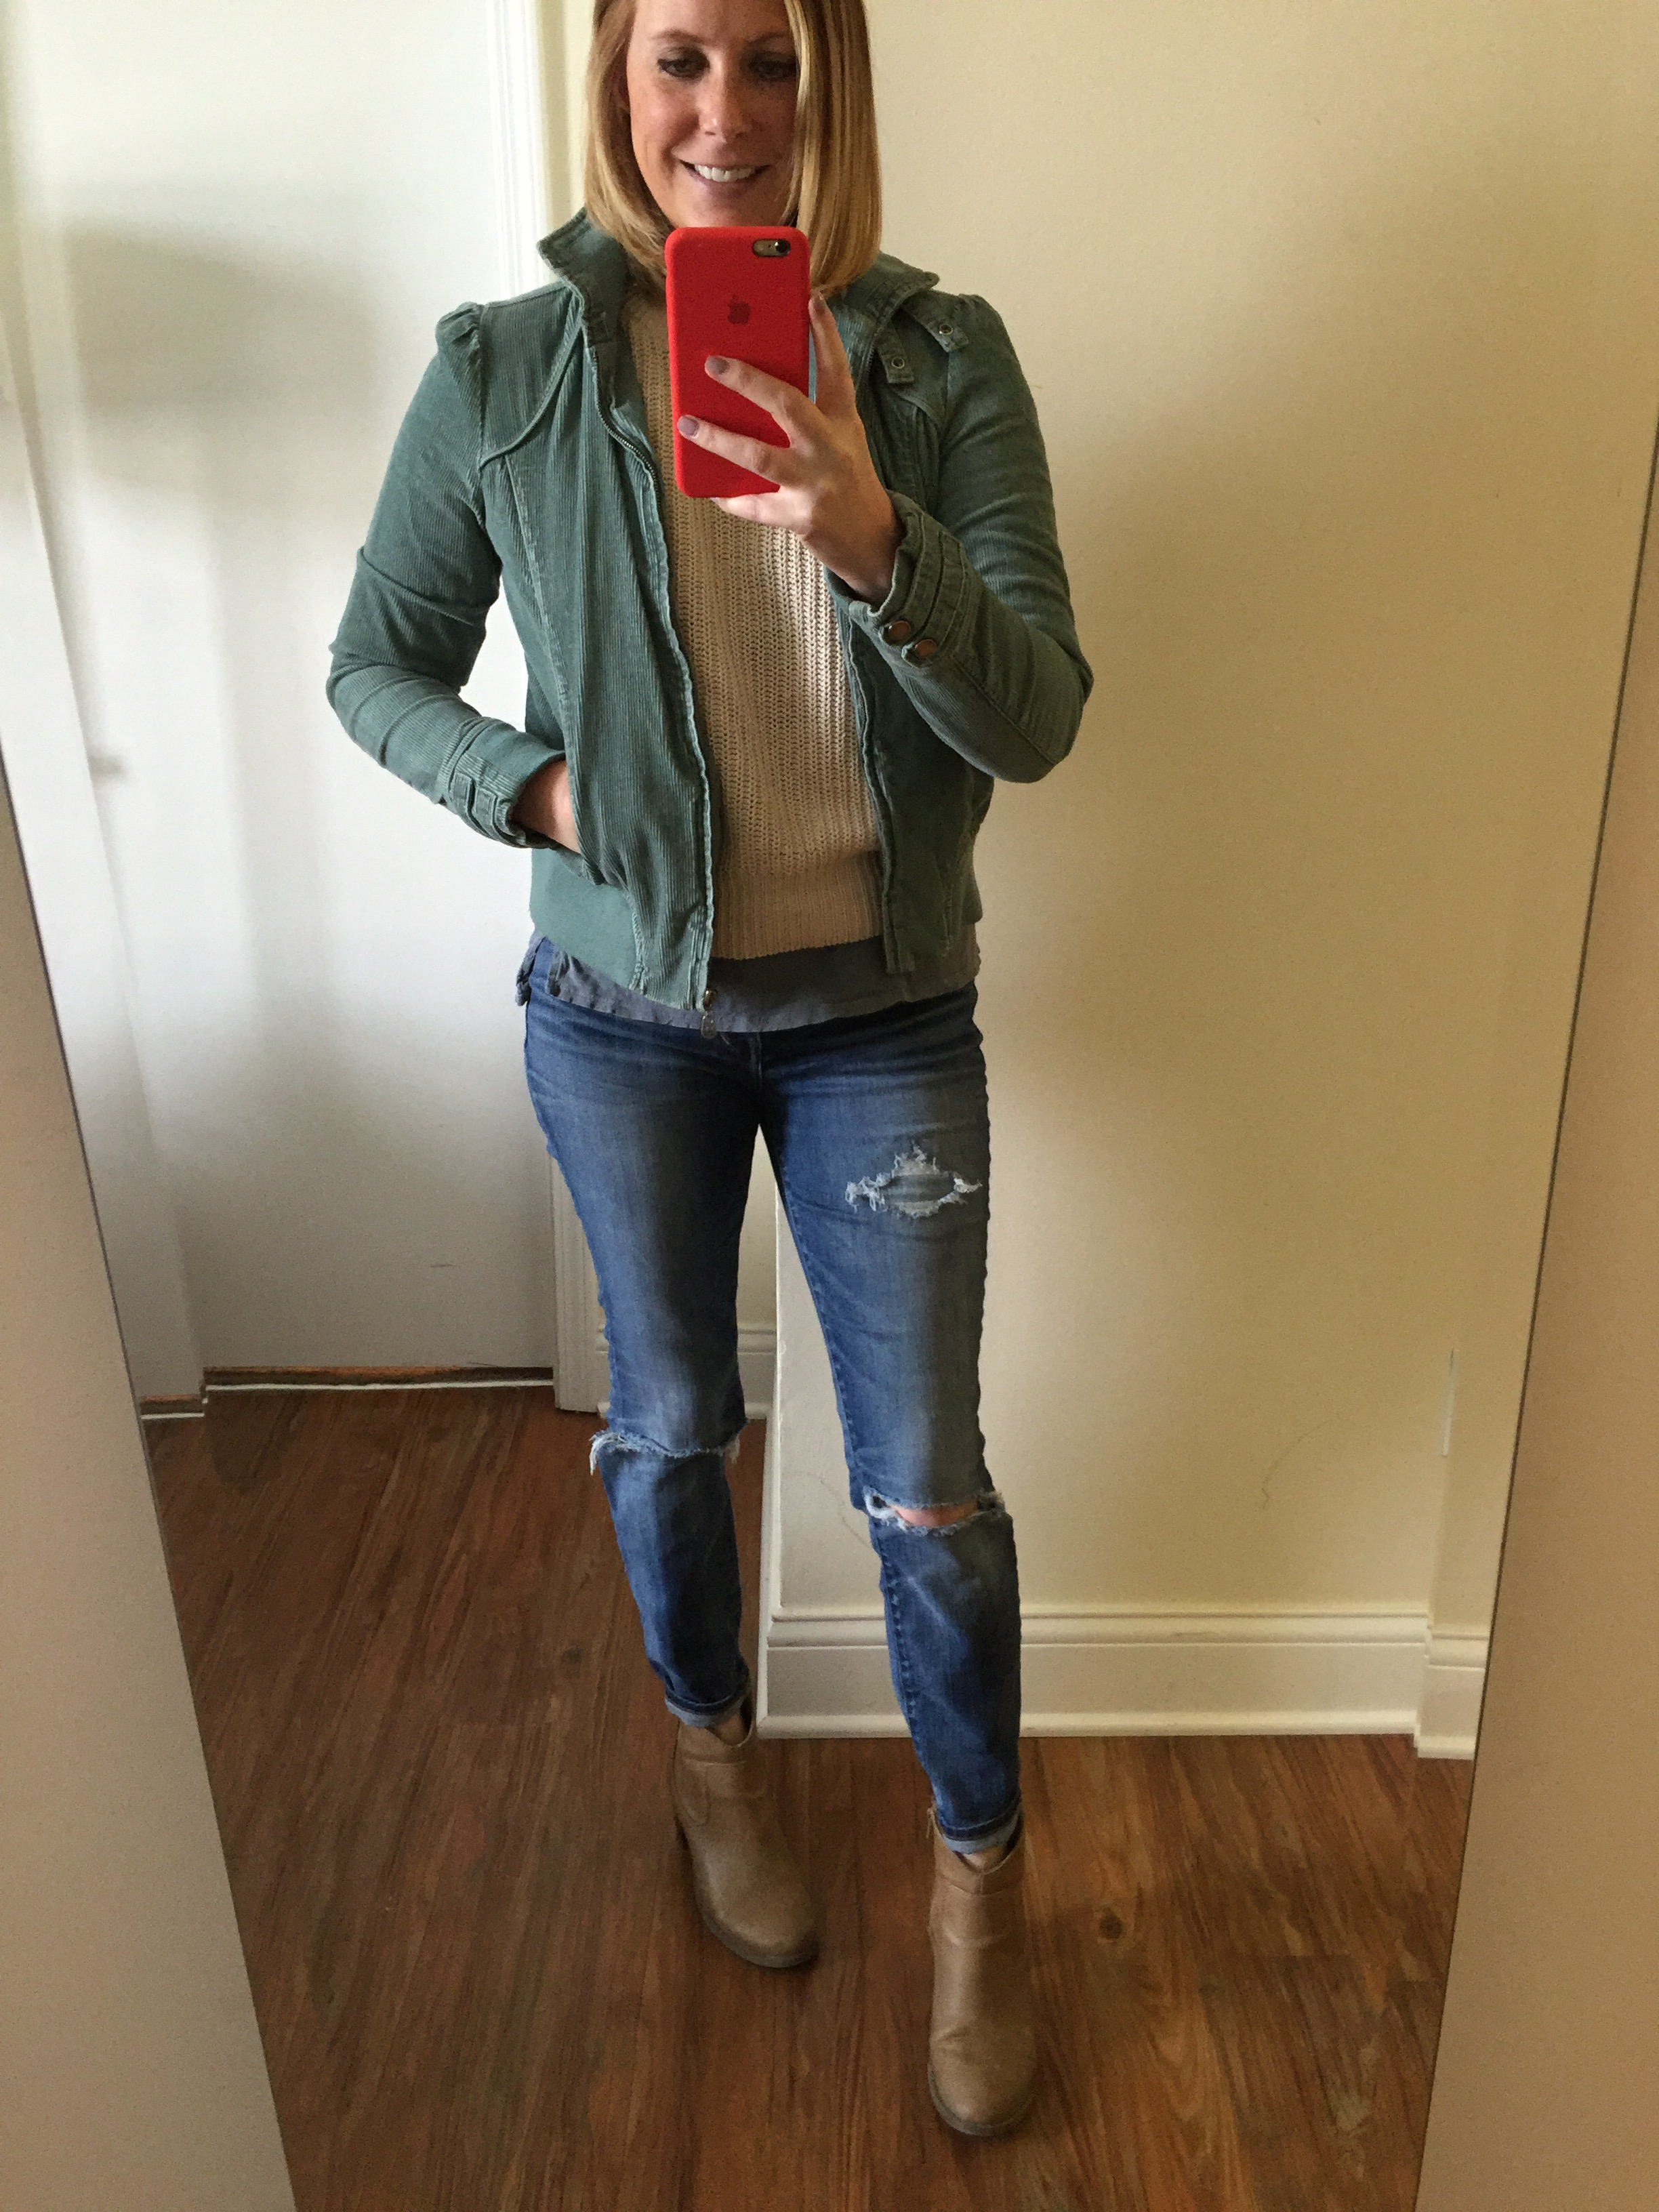 Jacket: Target (few years old), Sweater: Hand-Me-Down, Tee: Anthropologie, Jeans: Madewell,  High Riser Skinny , Boots: Old Navy,